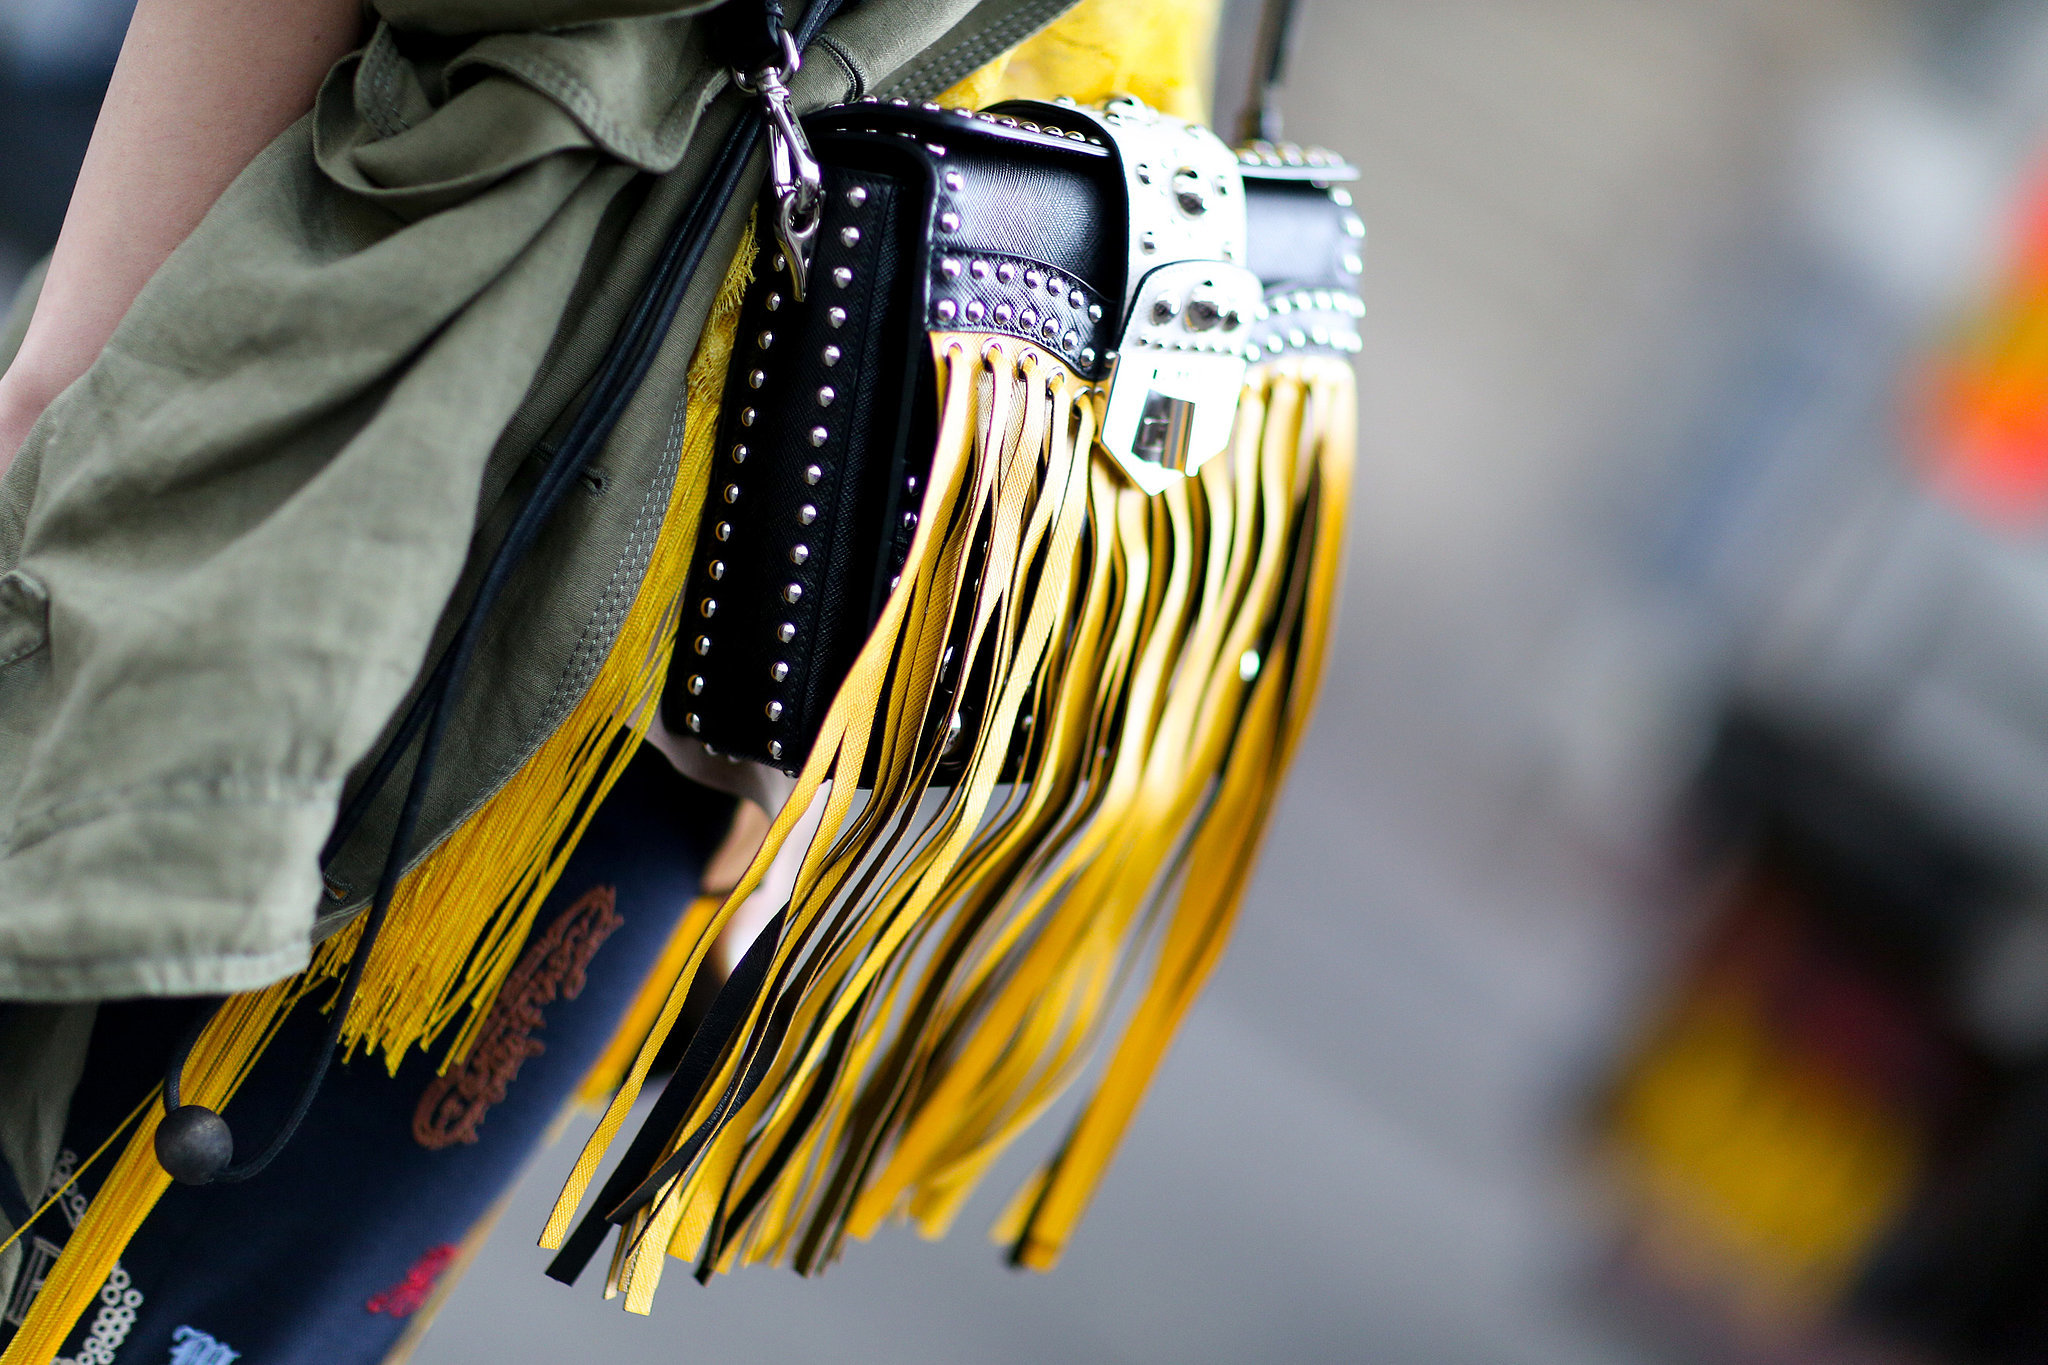 Fringed and fabulous.